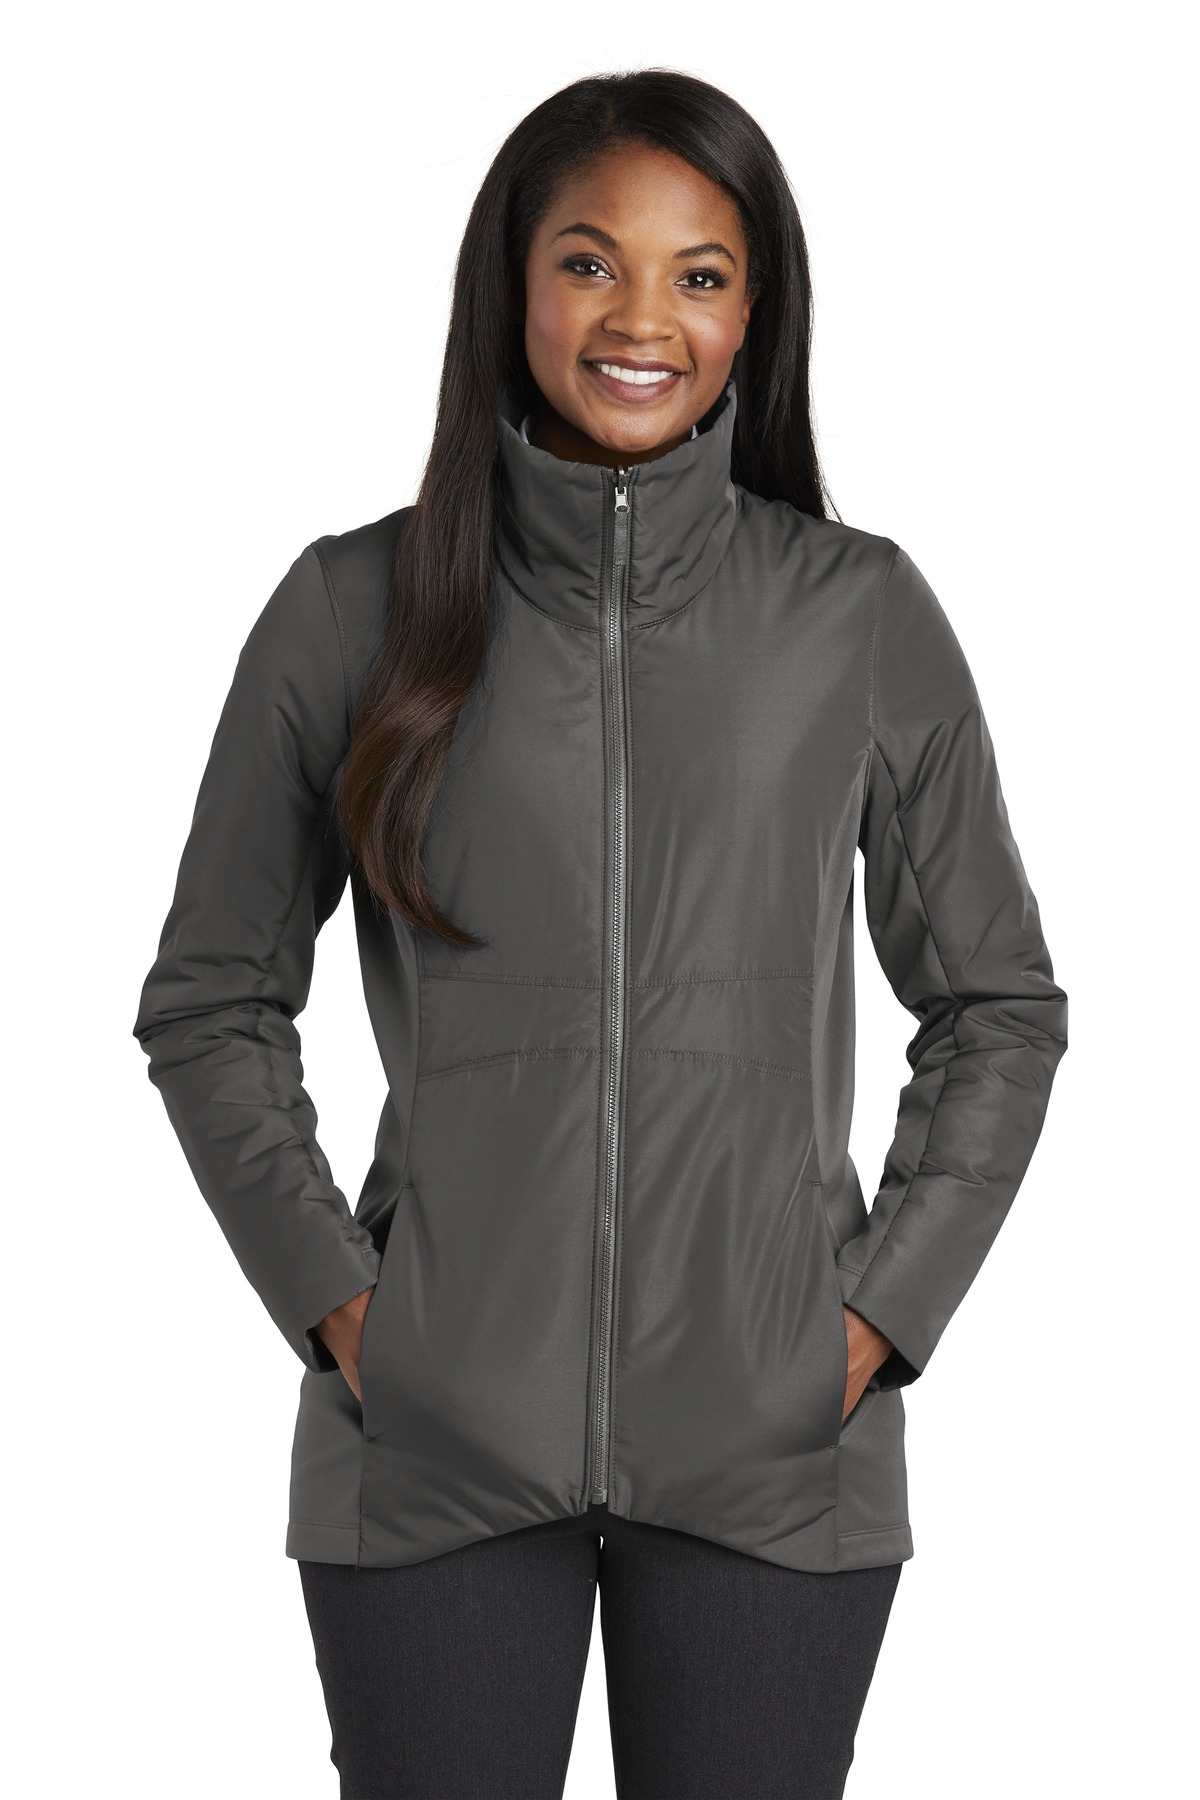 Port Authority  ®  Ladies Collective Insulated Jacket. L902 - Graphite